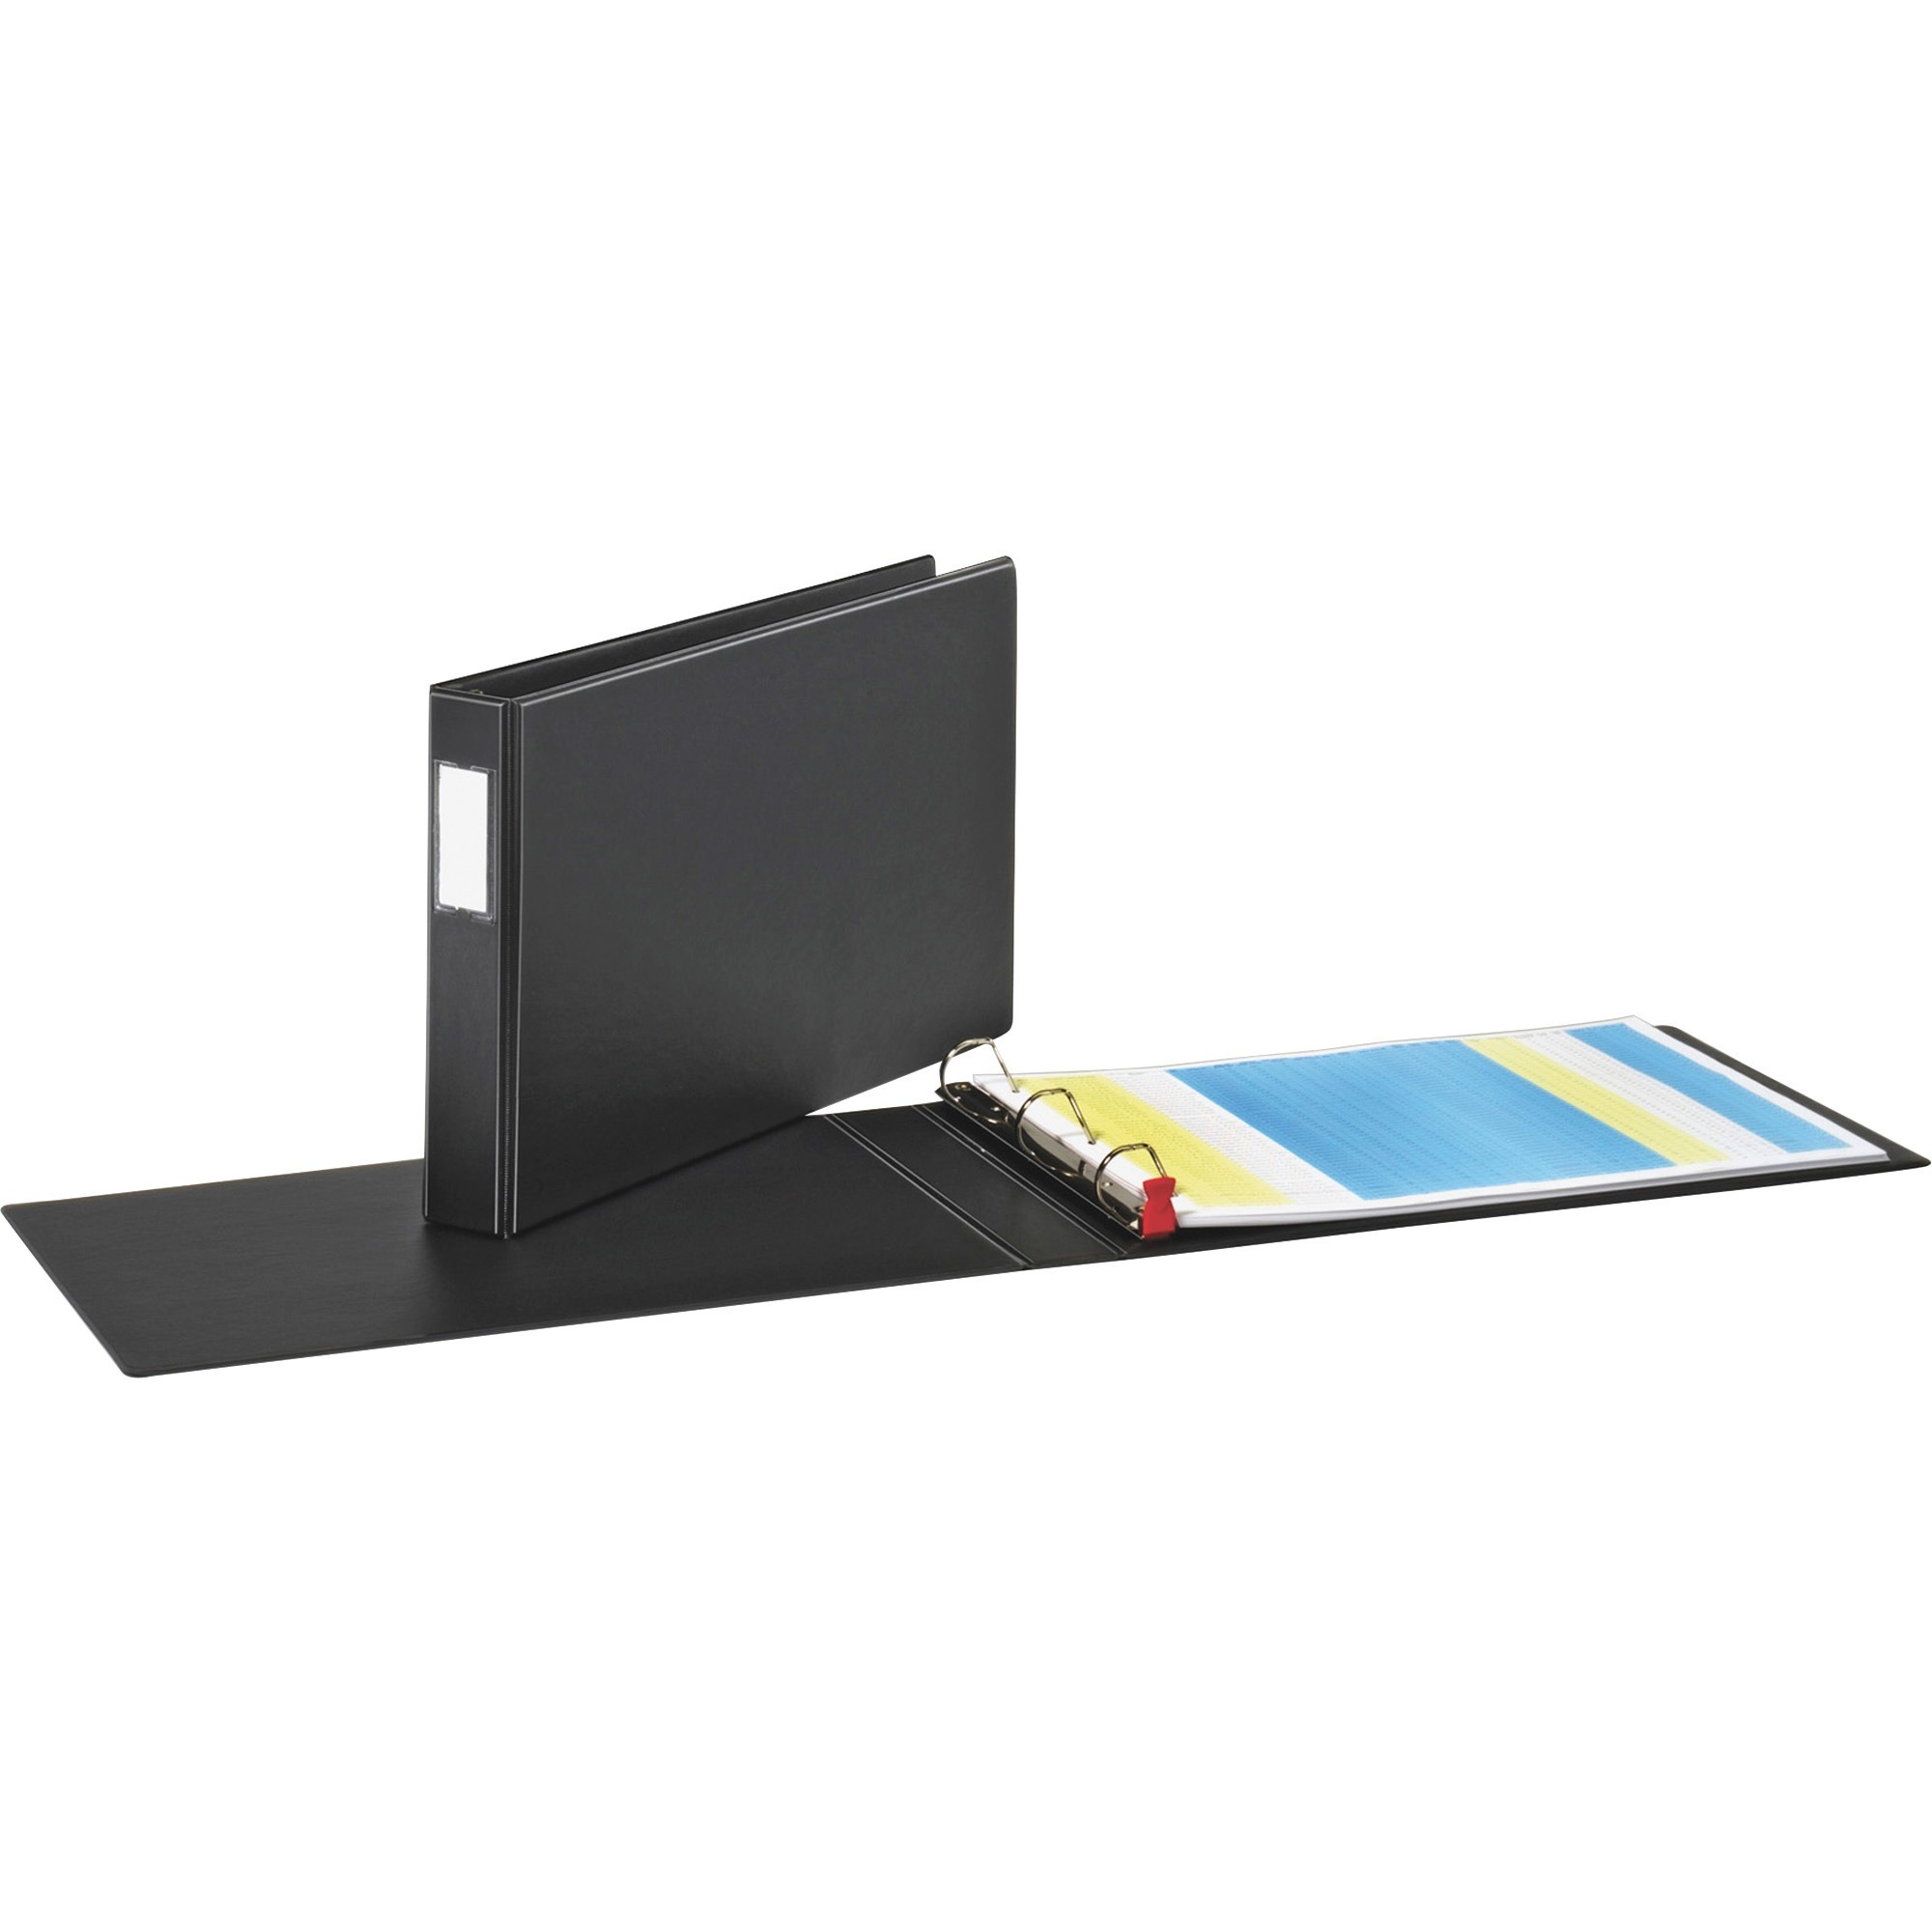 "Premier Easy Open 11 x 17 Locking Slant-D Ring Binder, 1 1/2"" Cap, Black"